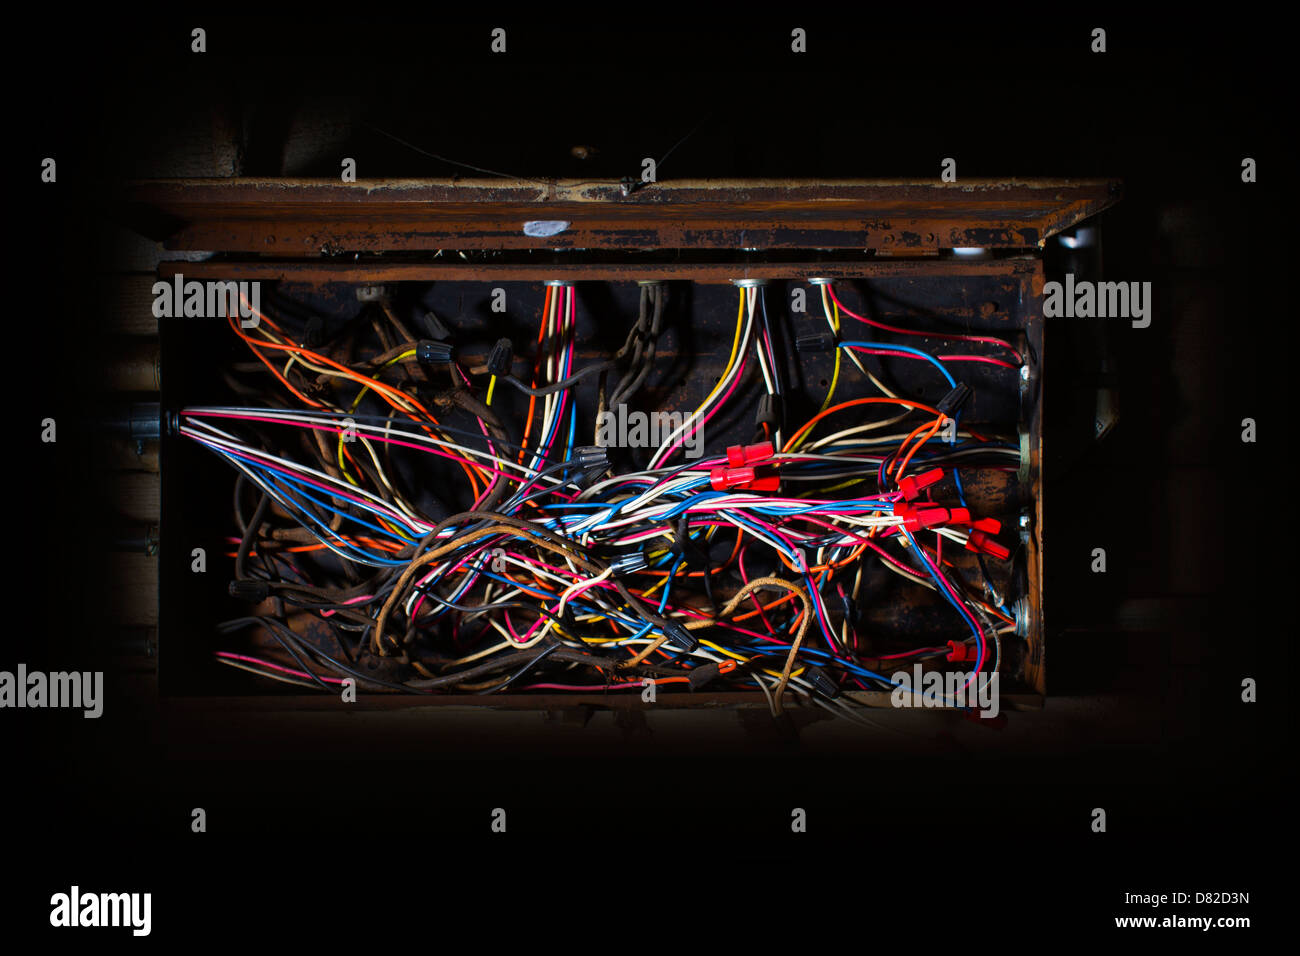 hight resolution of old fuse box with mess of wires cables colored coded running in fuse box cables